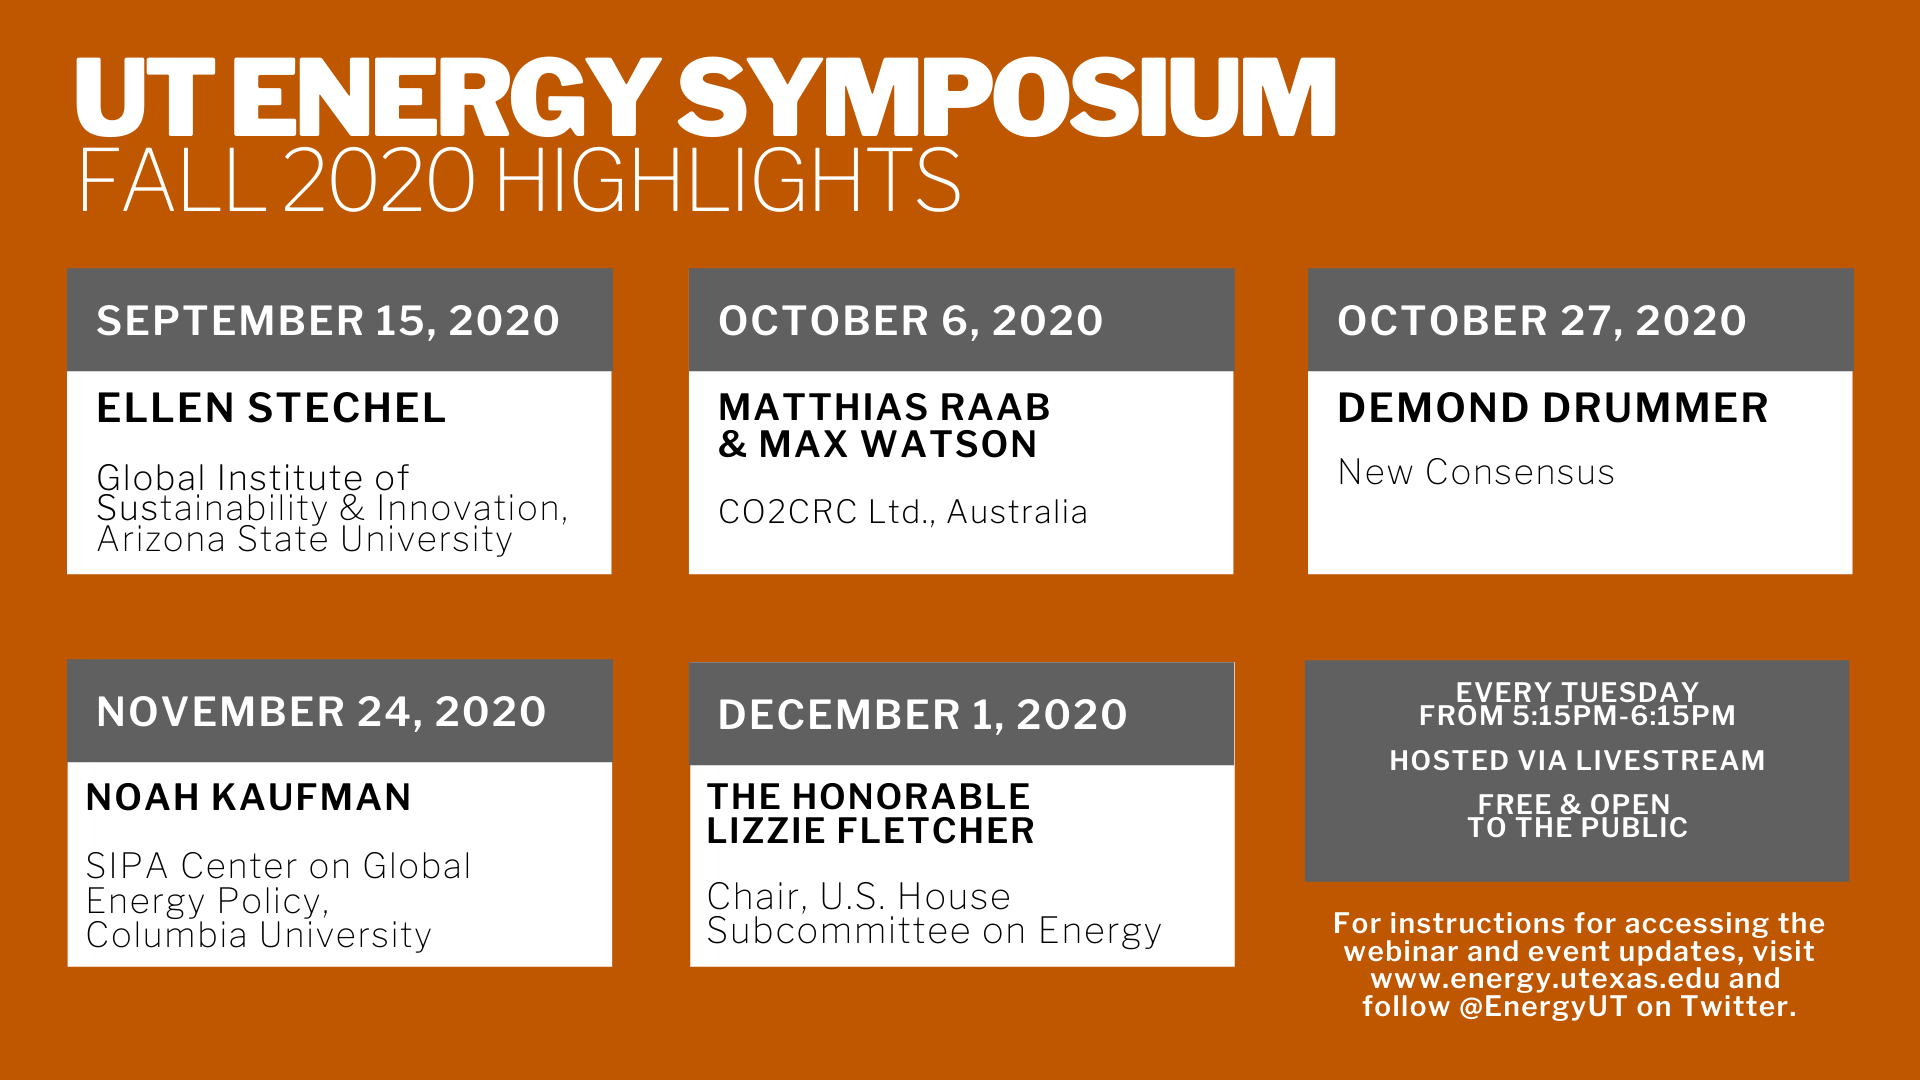 Graphic repeats highlights of speakers listed in UT Energy Symposium schedule below